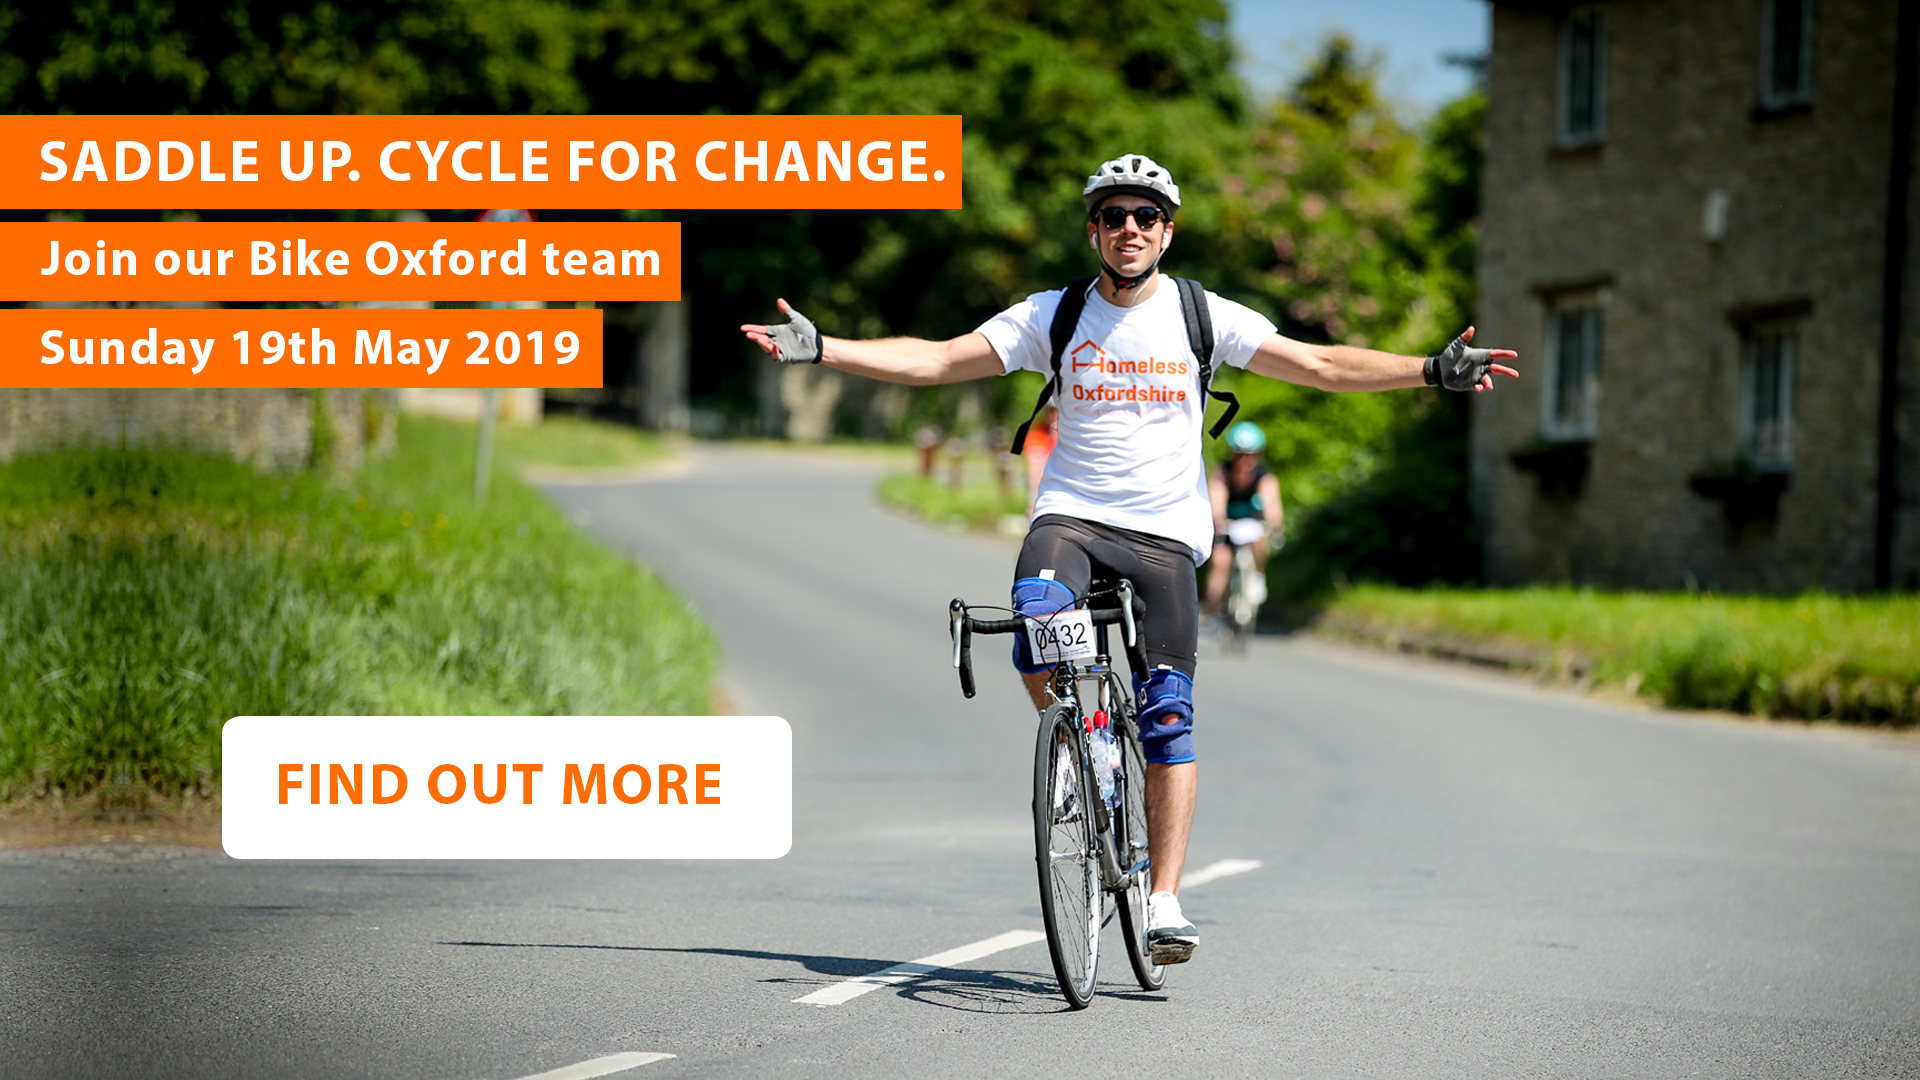 Bike Oxford pop up - Saddle up. Cycle for change. Join our Bike Oxford team. Sunday 19th May